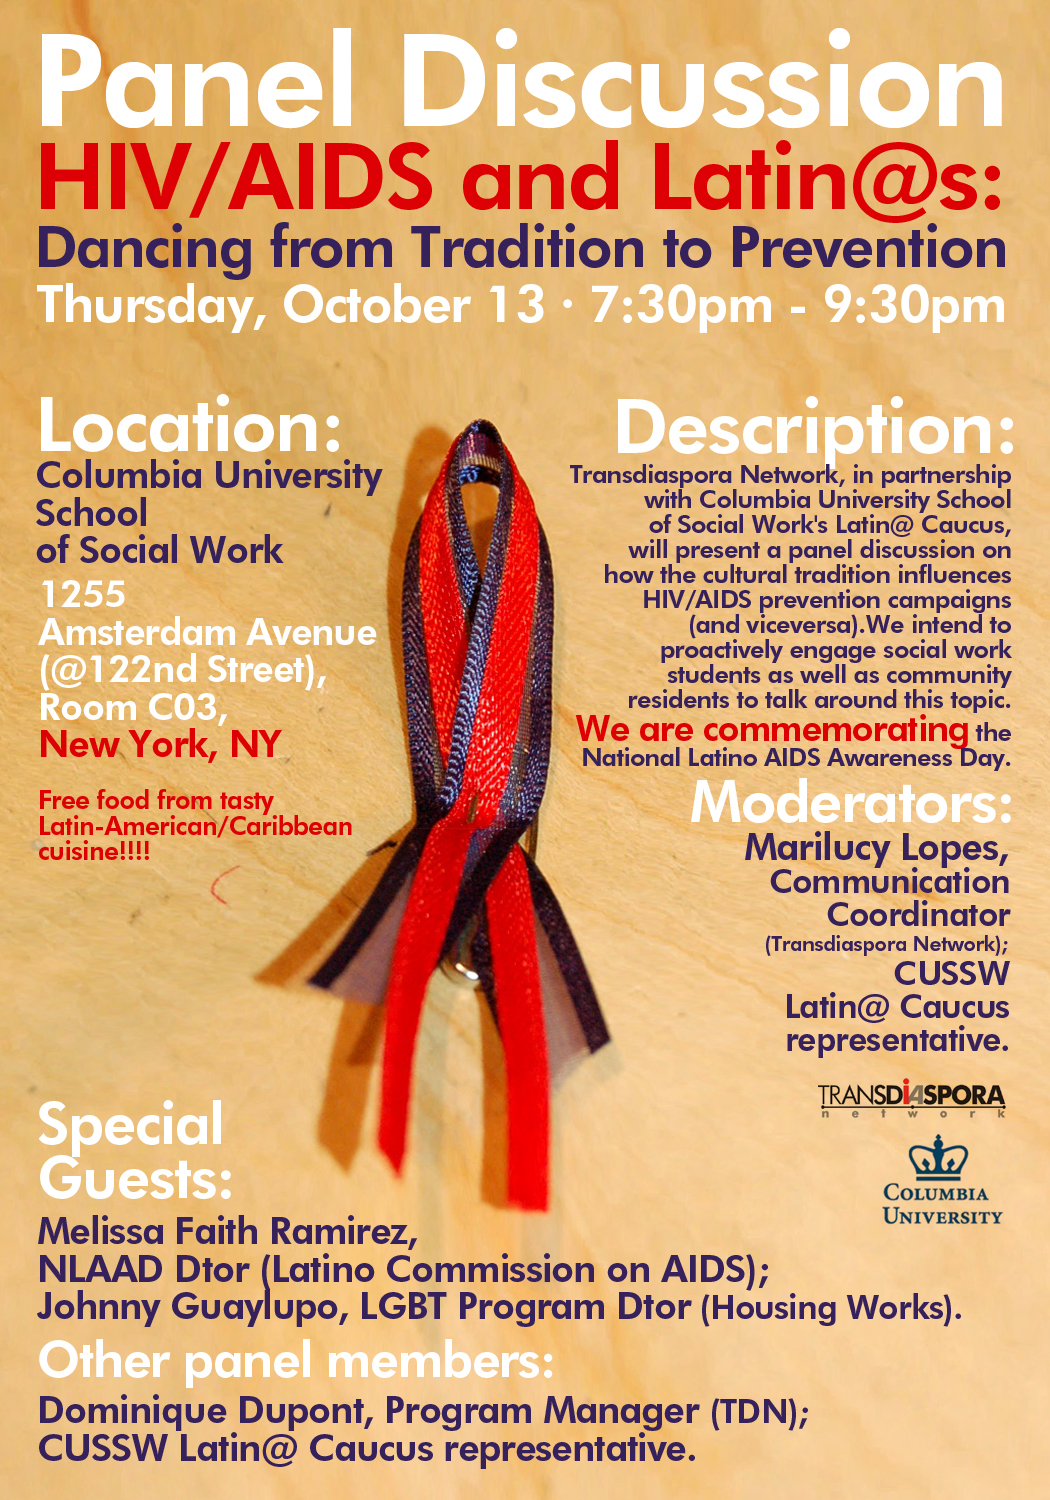 HIV/AIDS and Latinos: Dancing from Tradition to Prevention